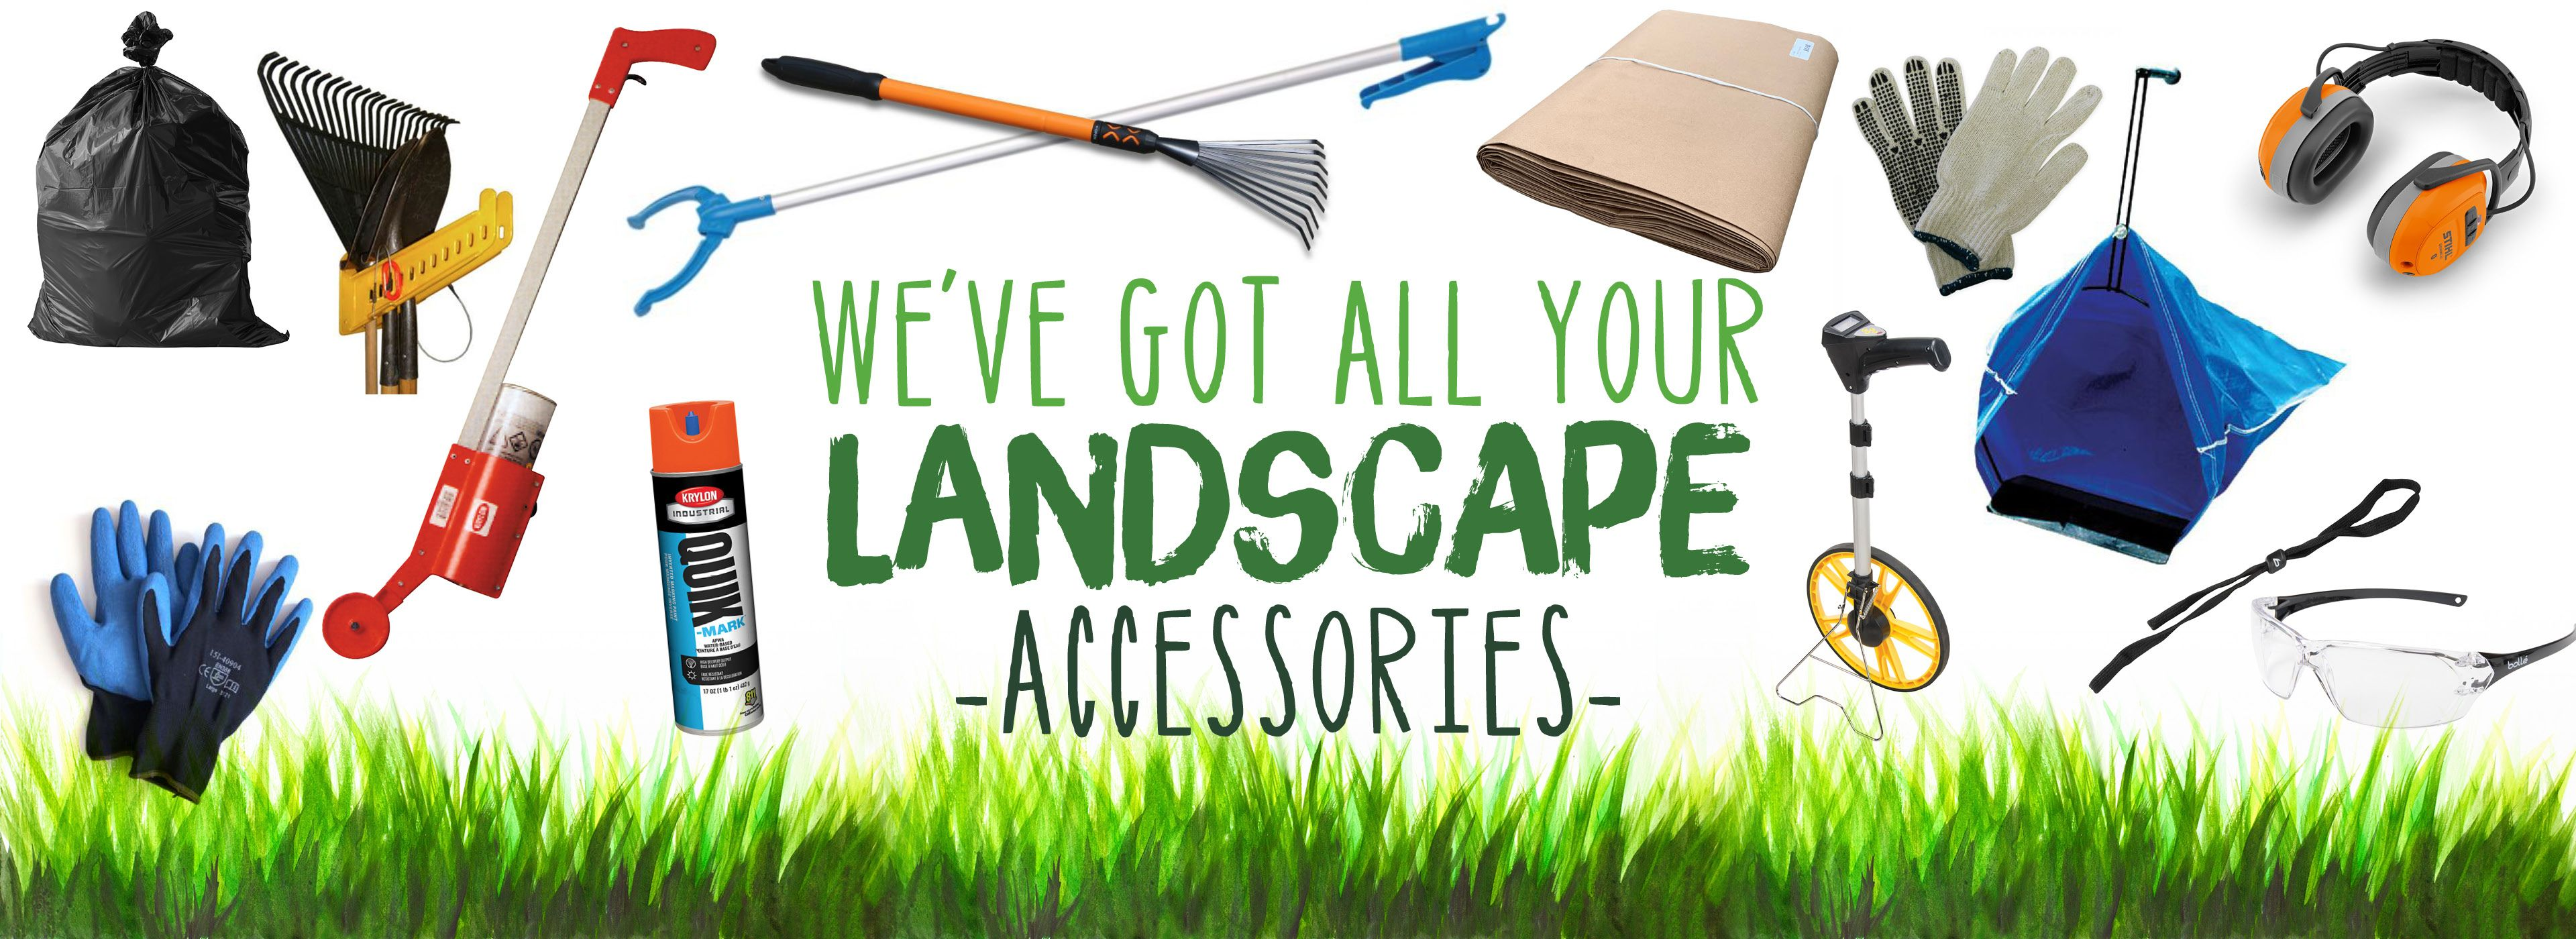 Spring Clean Up Accessories